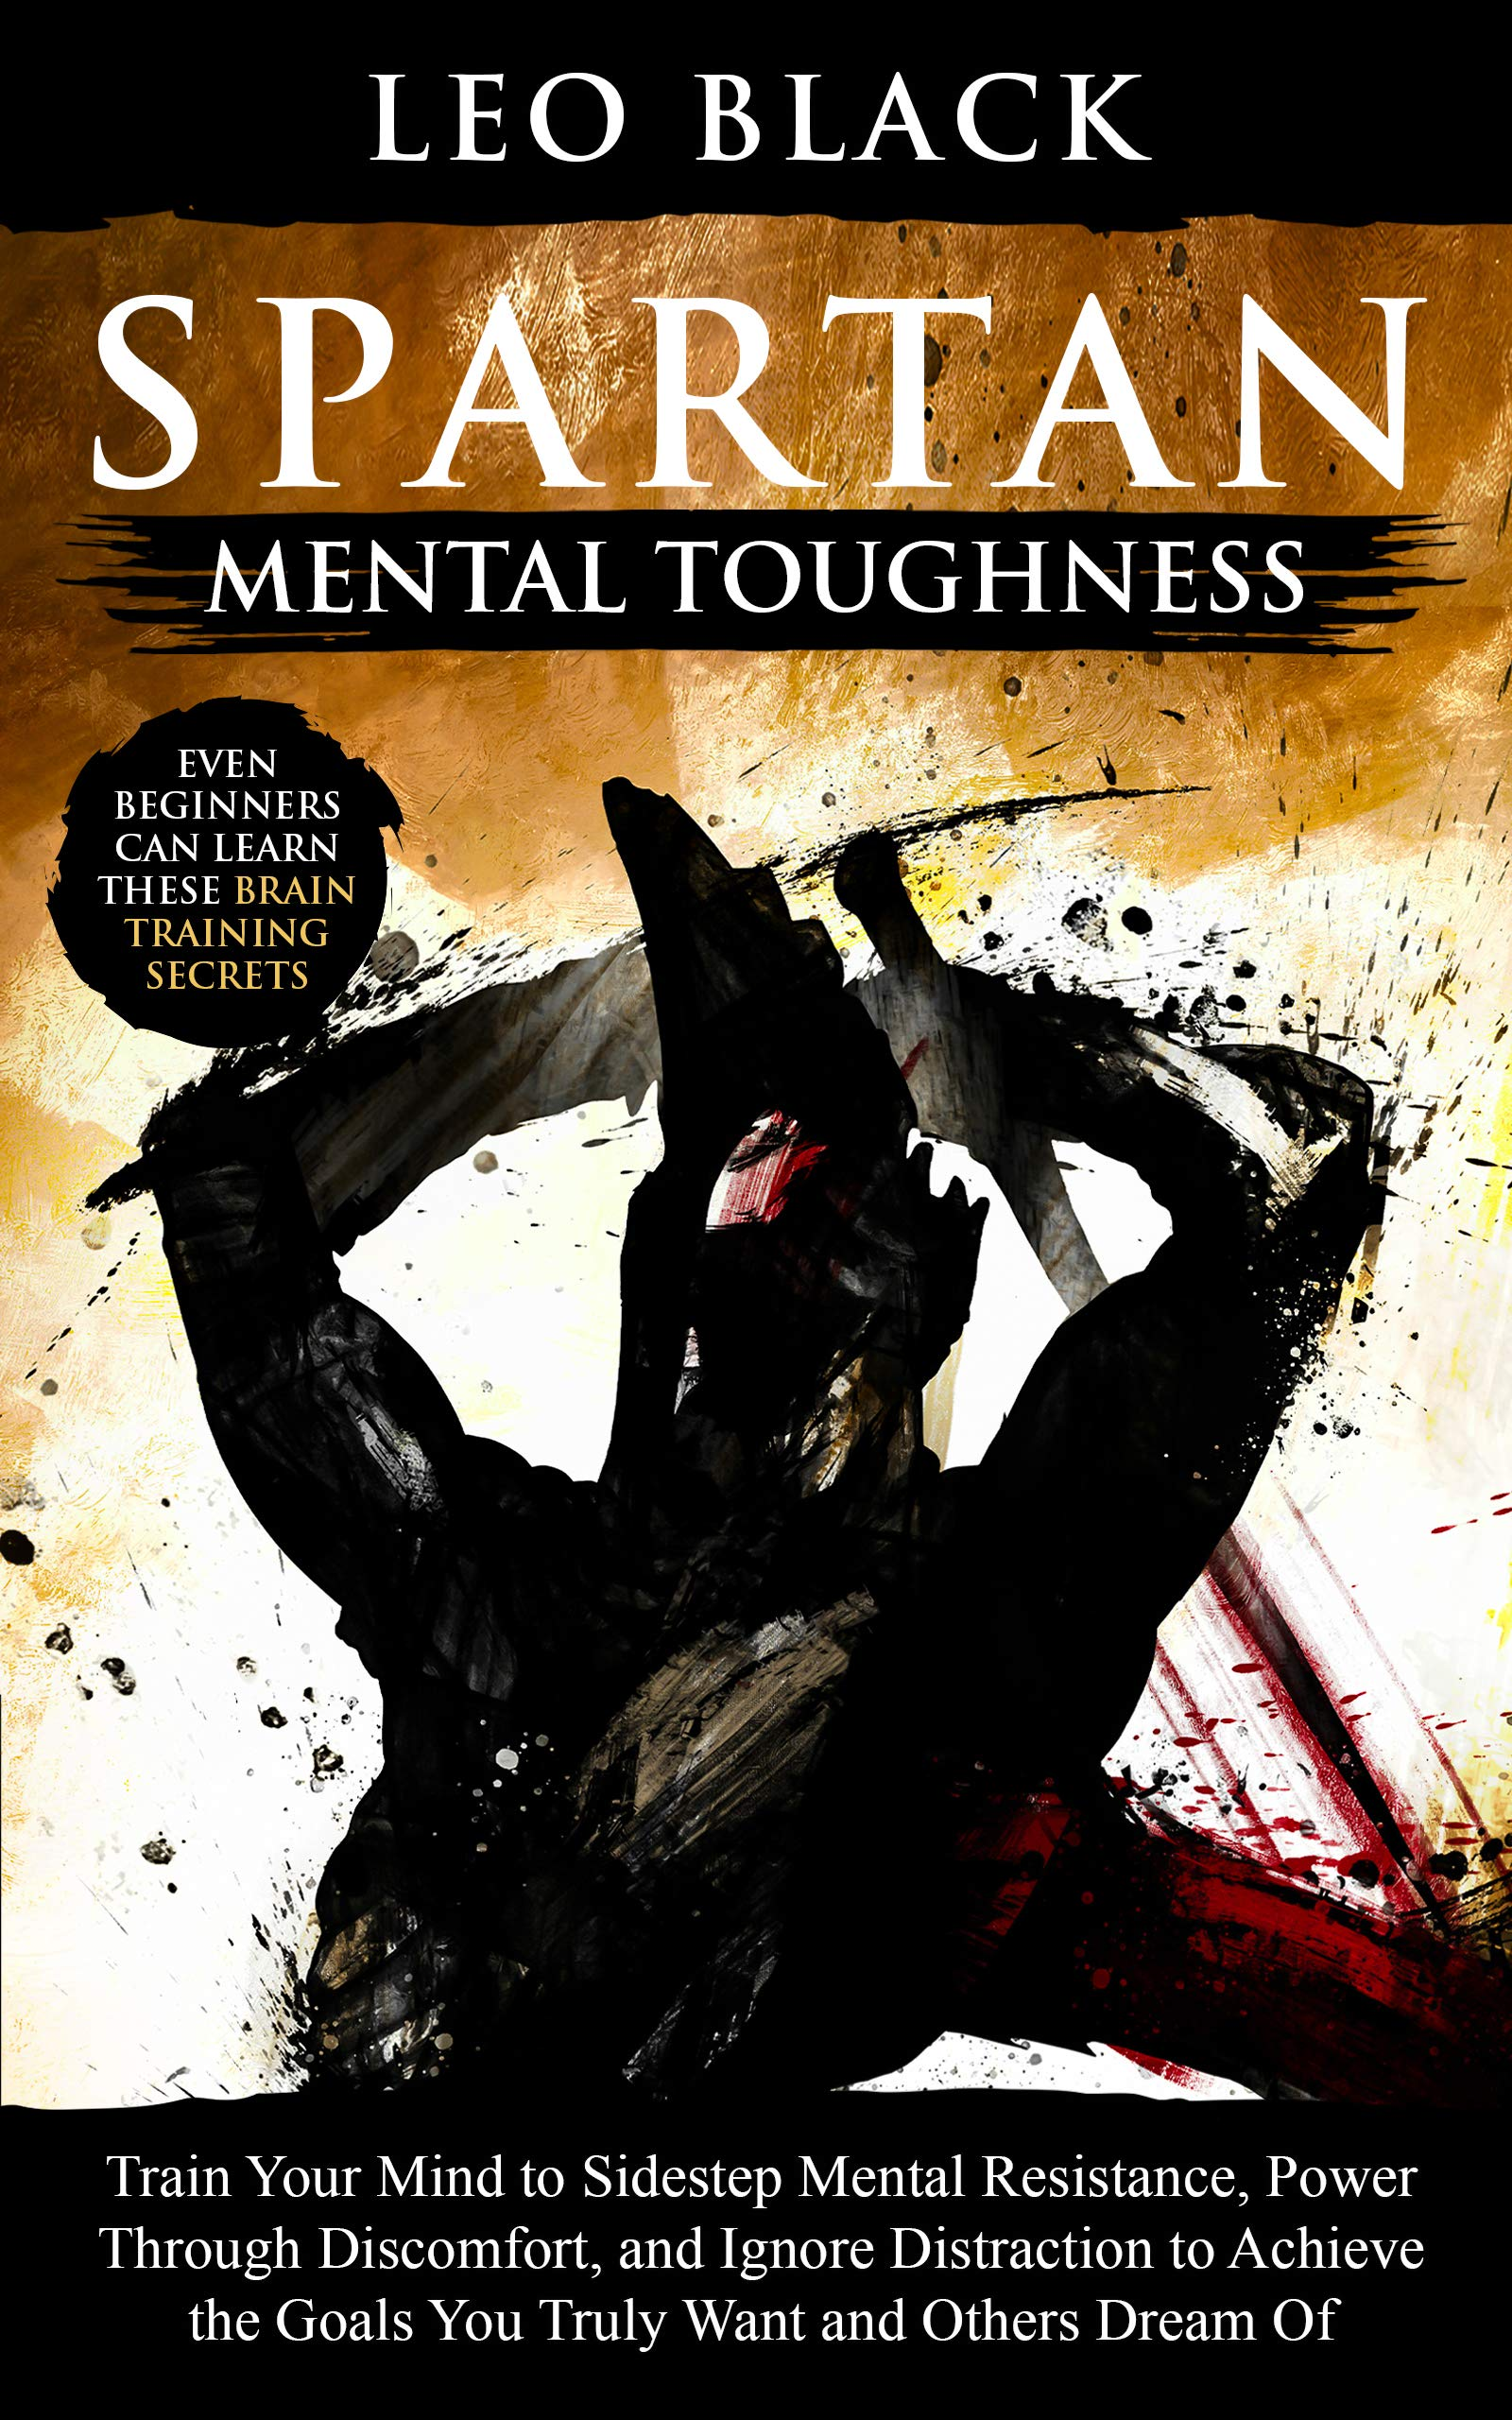 Spartan Mental Toughness: Train Your Mind to Sidestep Mental Resistance, Power Through Discomfort, and Ignore Distraction to Achieve the Goals You Truly Want and Others Dream Of.